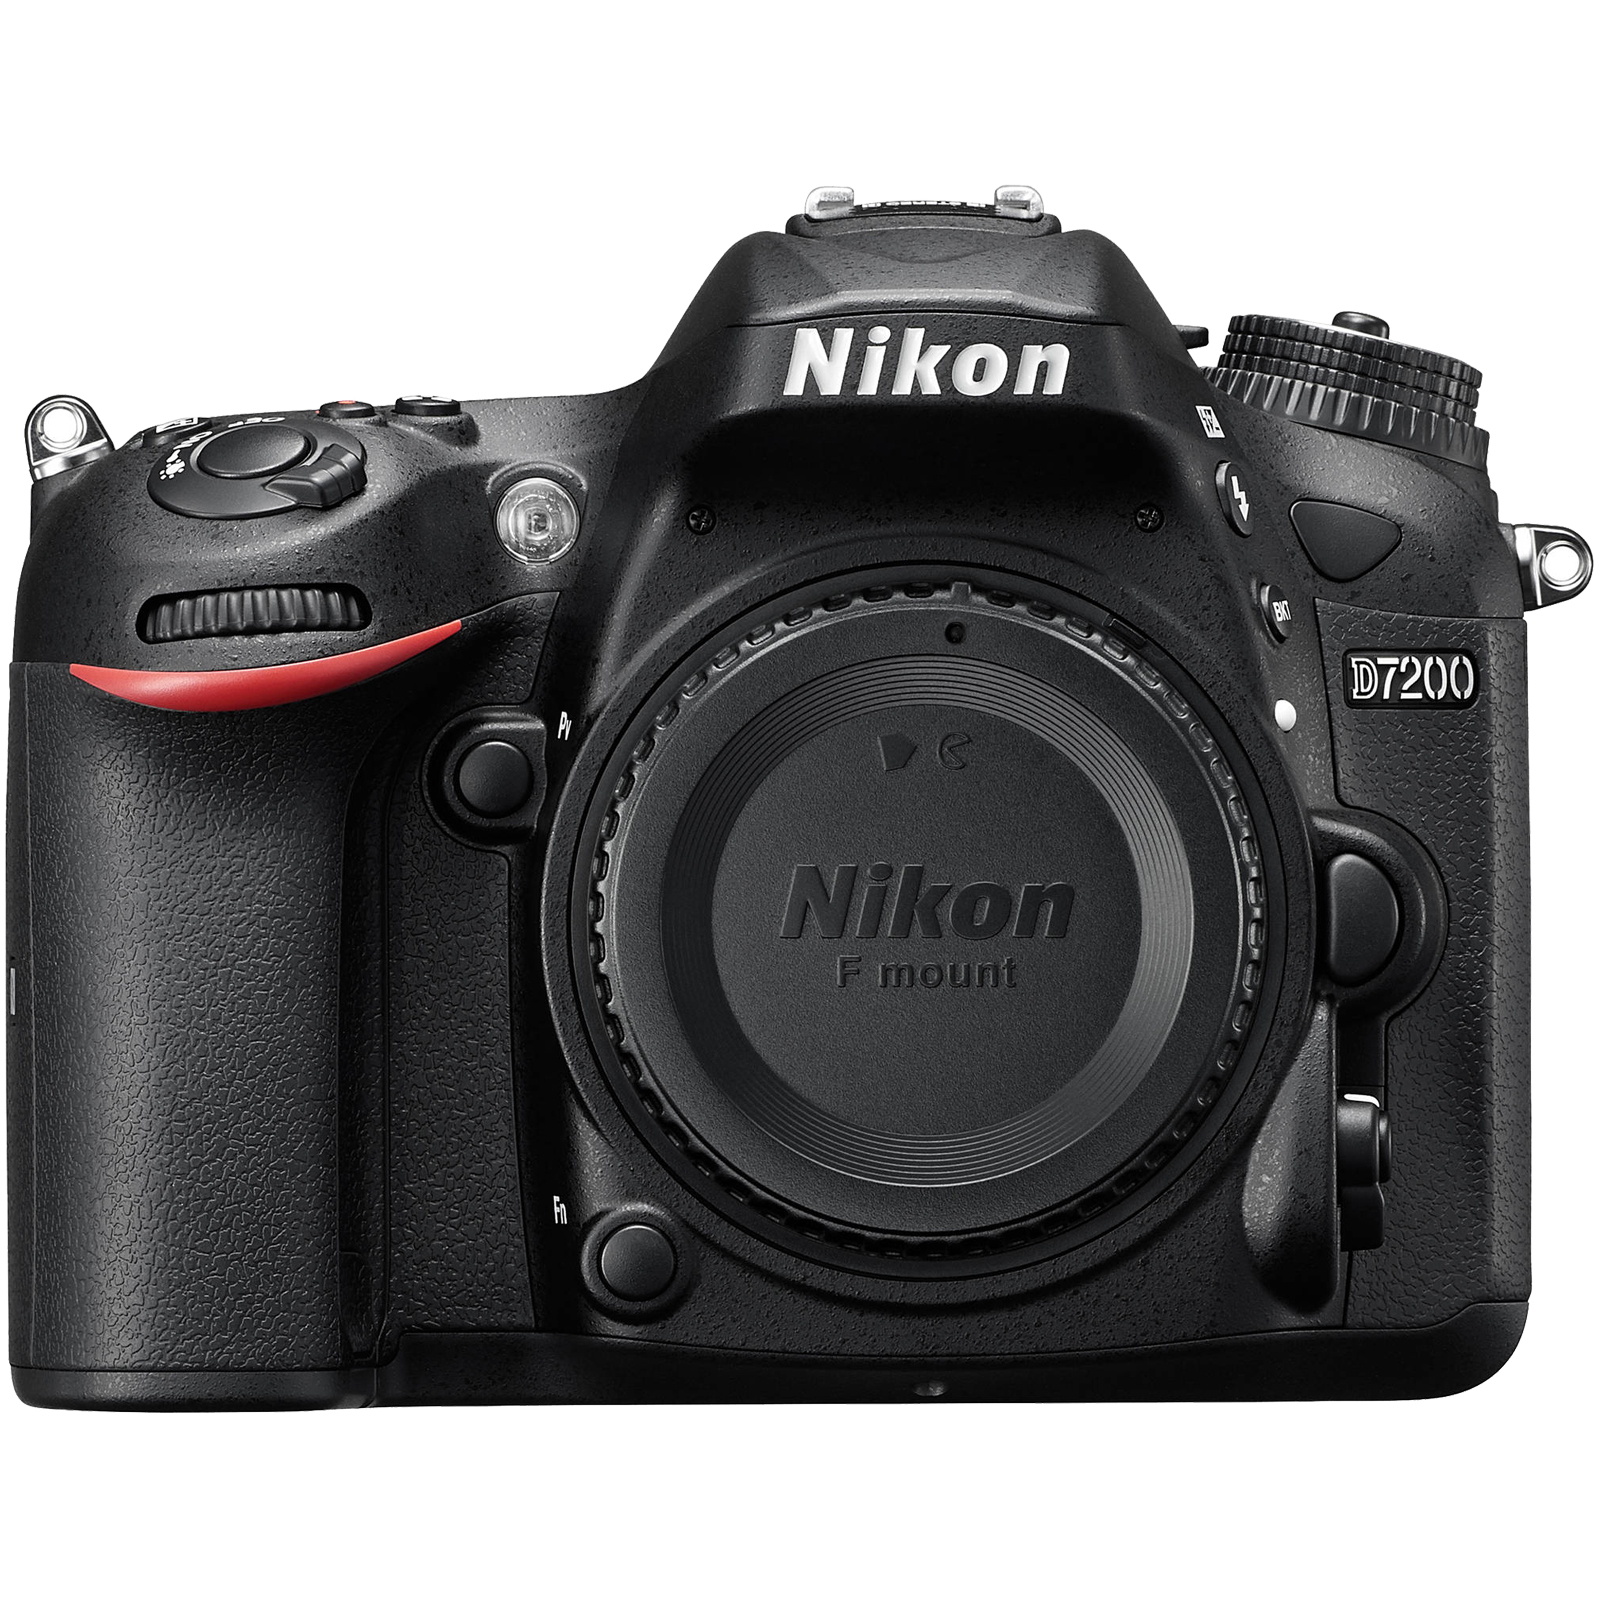 Nikon D7200 Wi-Fi Digital SLR Camera Body - Factory Refurbished includes Full 1 Year Warranty